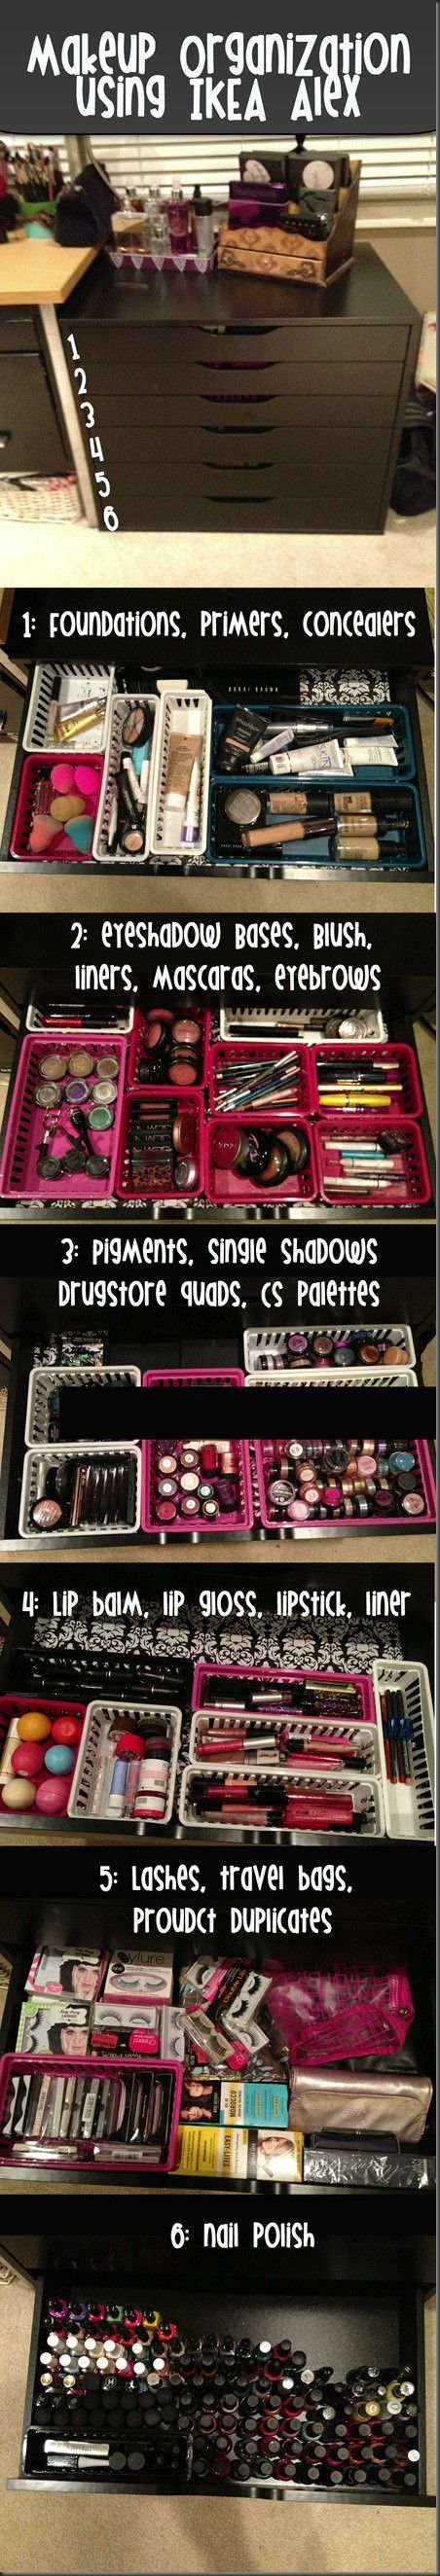 I don't even have enough makeup to fill one basket. imagine having enough makeup that you need an entire dresser....fuck that